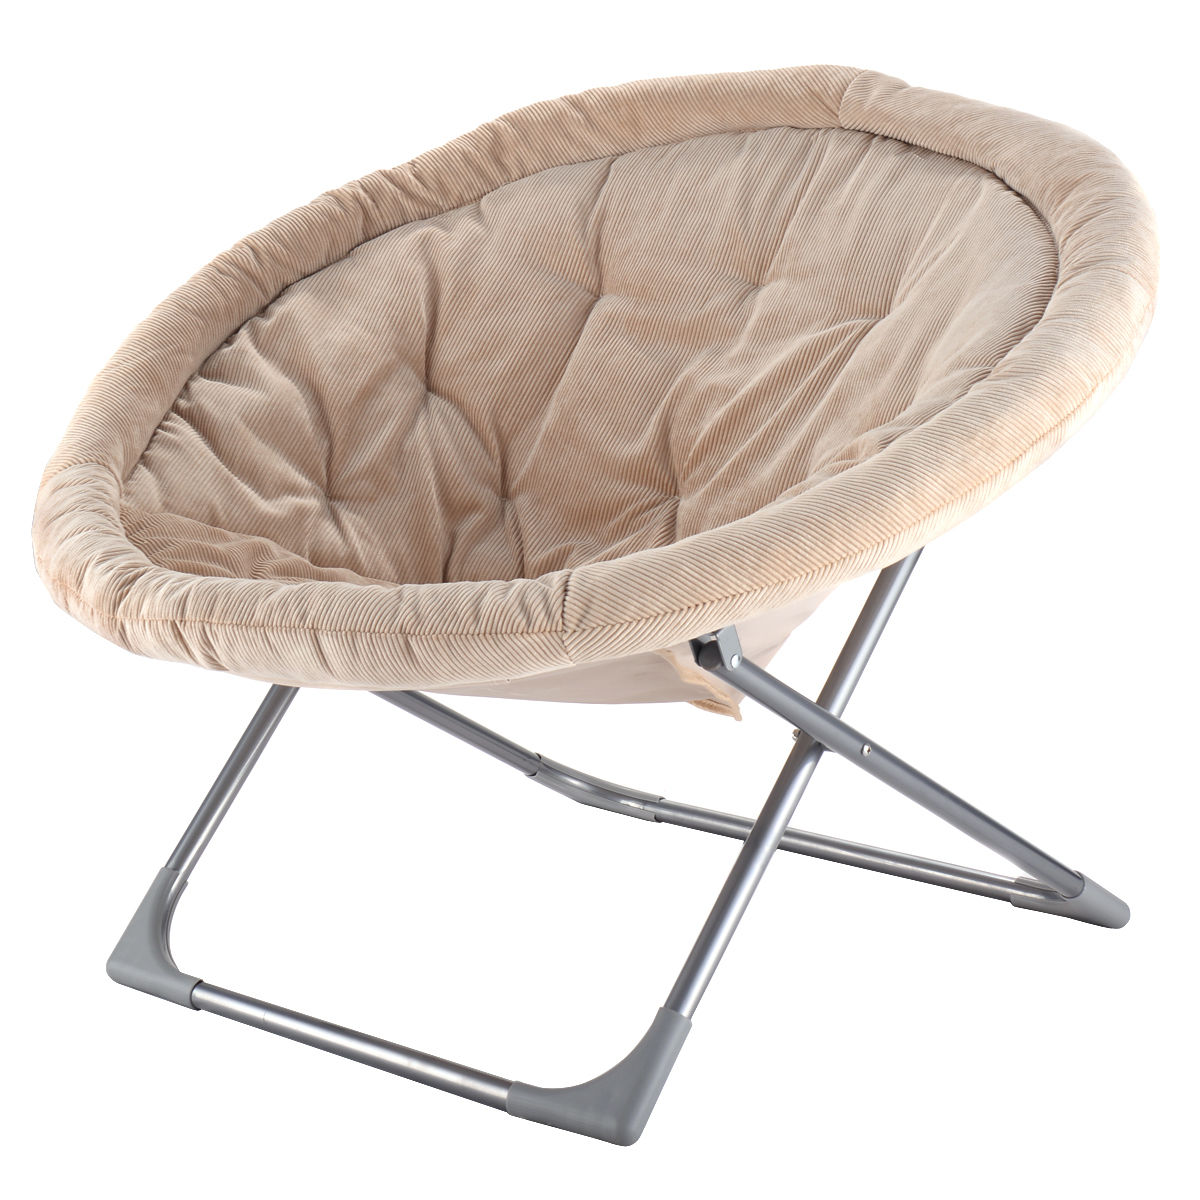 folding chair for living room stair elevator lift costway oversized large saucer moon corduroy round seat walmart com